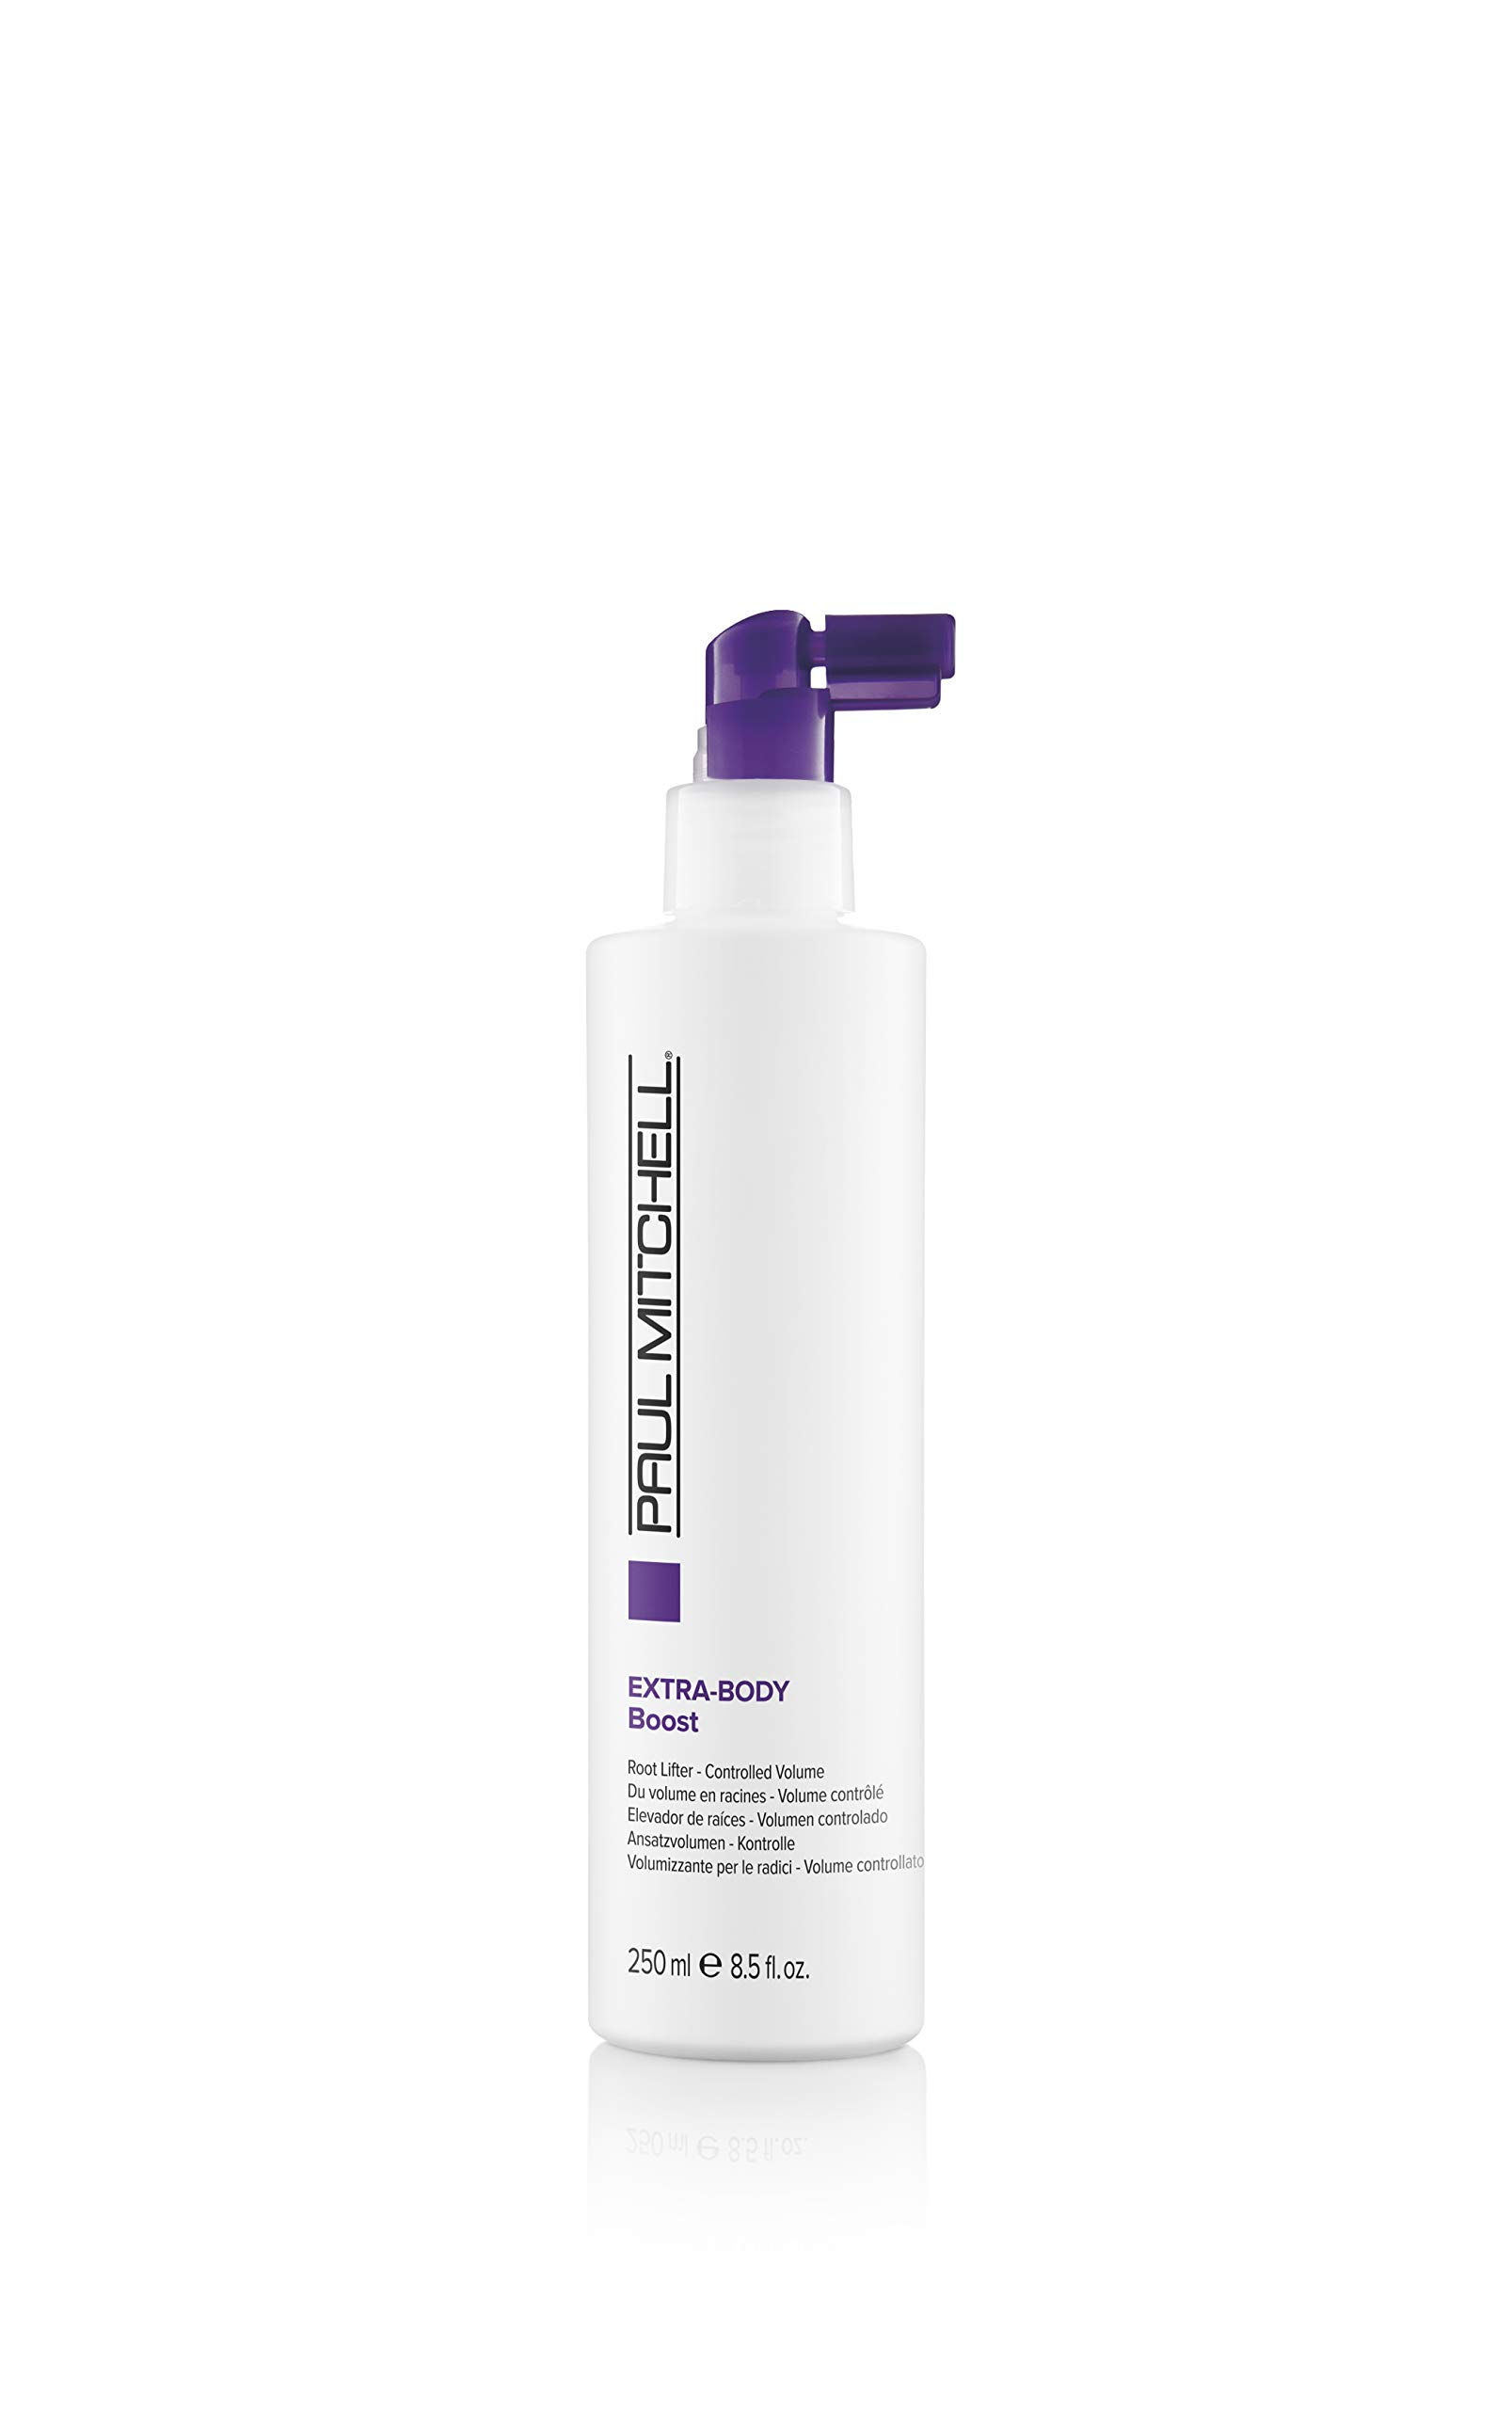 Paul Mitchell Extra-Body Boost Root Lifter,8.5 Fl Oz by Paul Mitchell